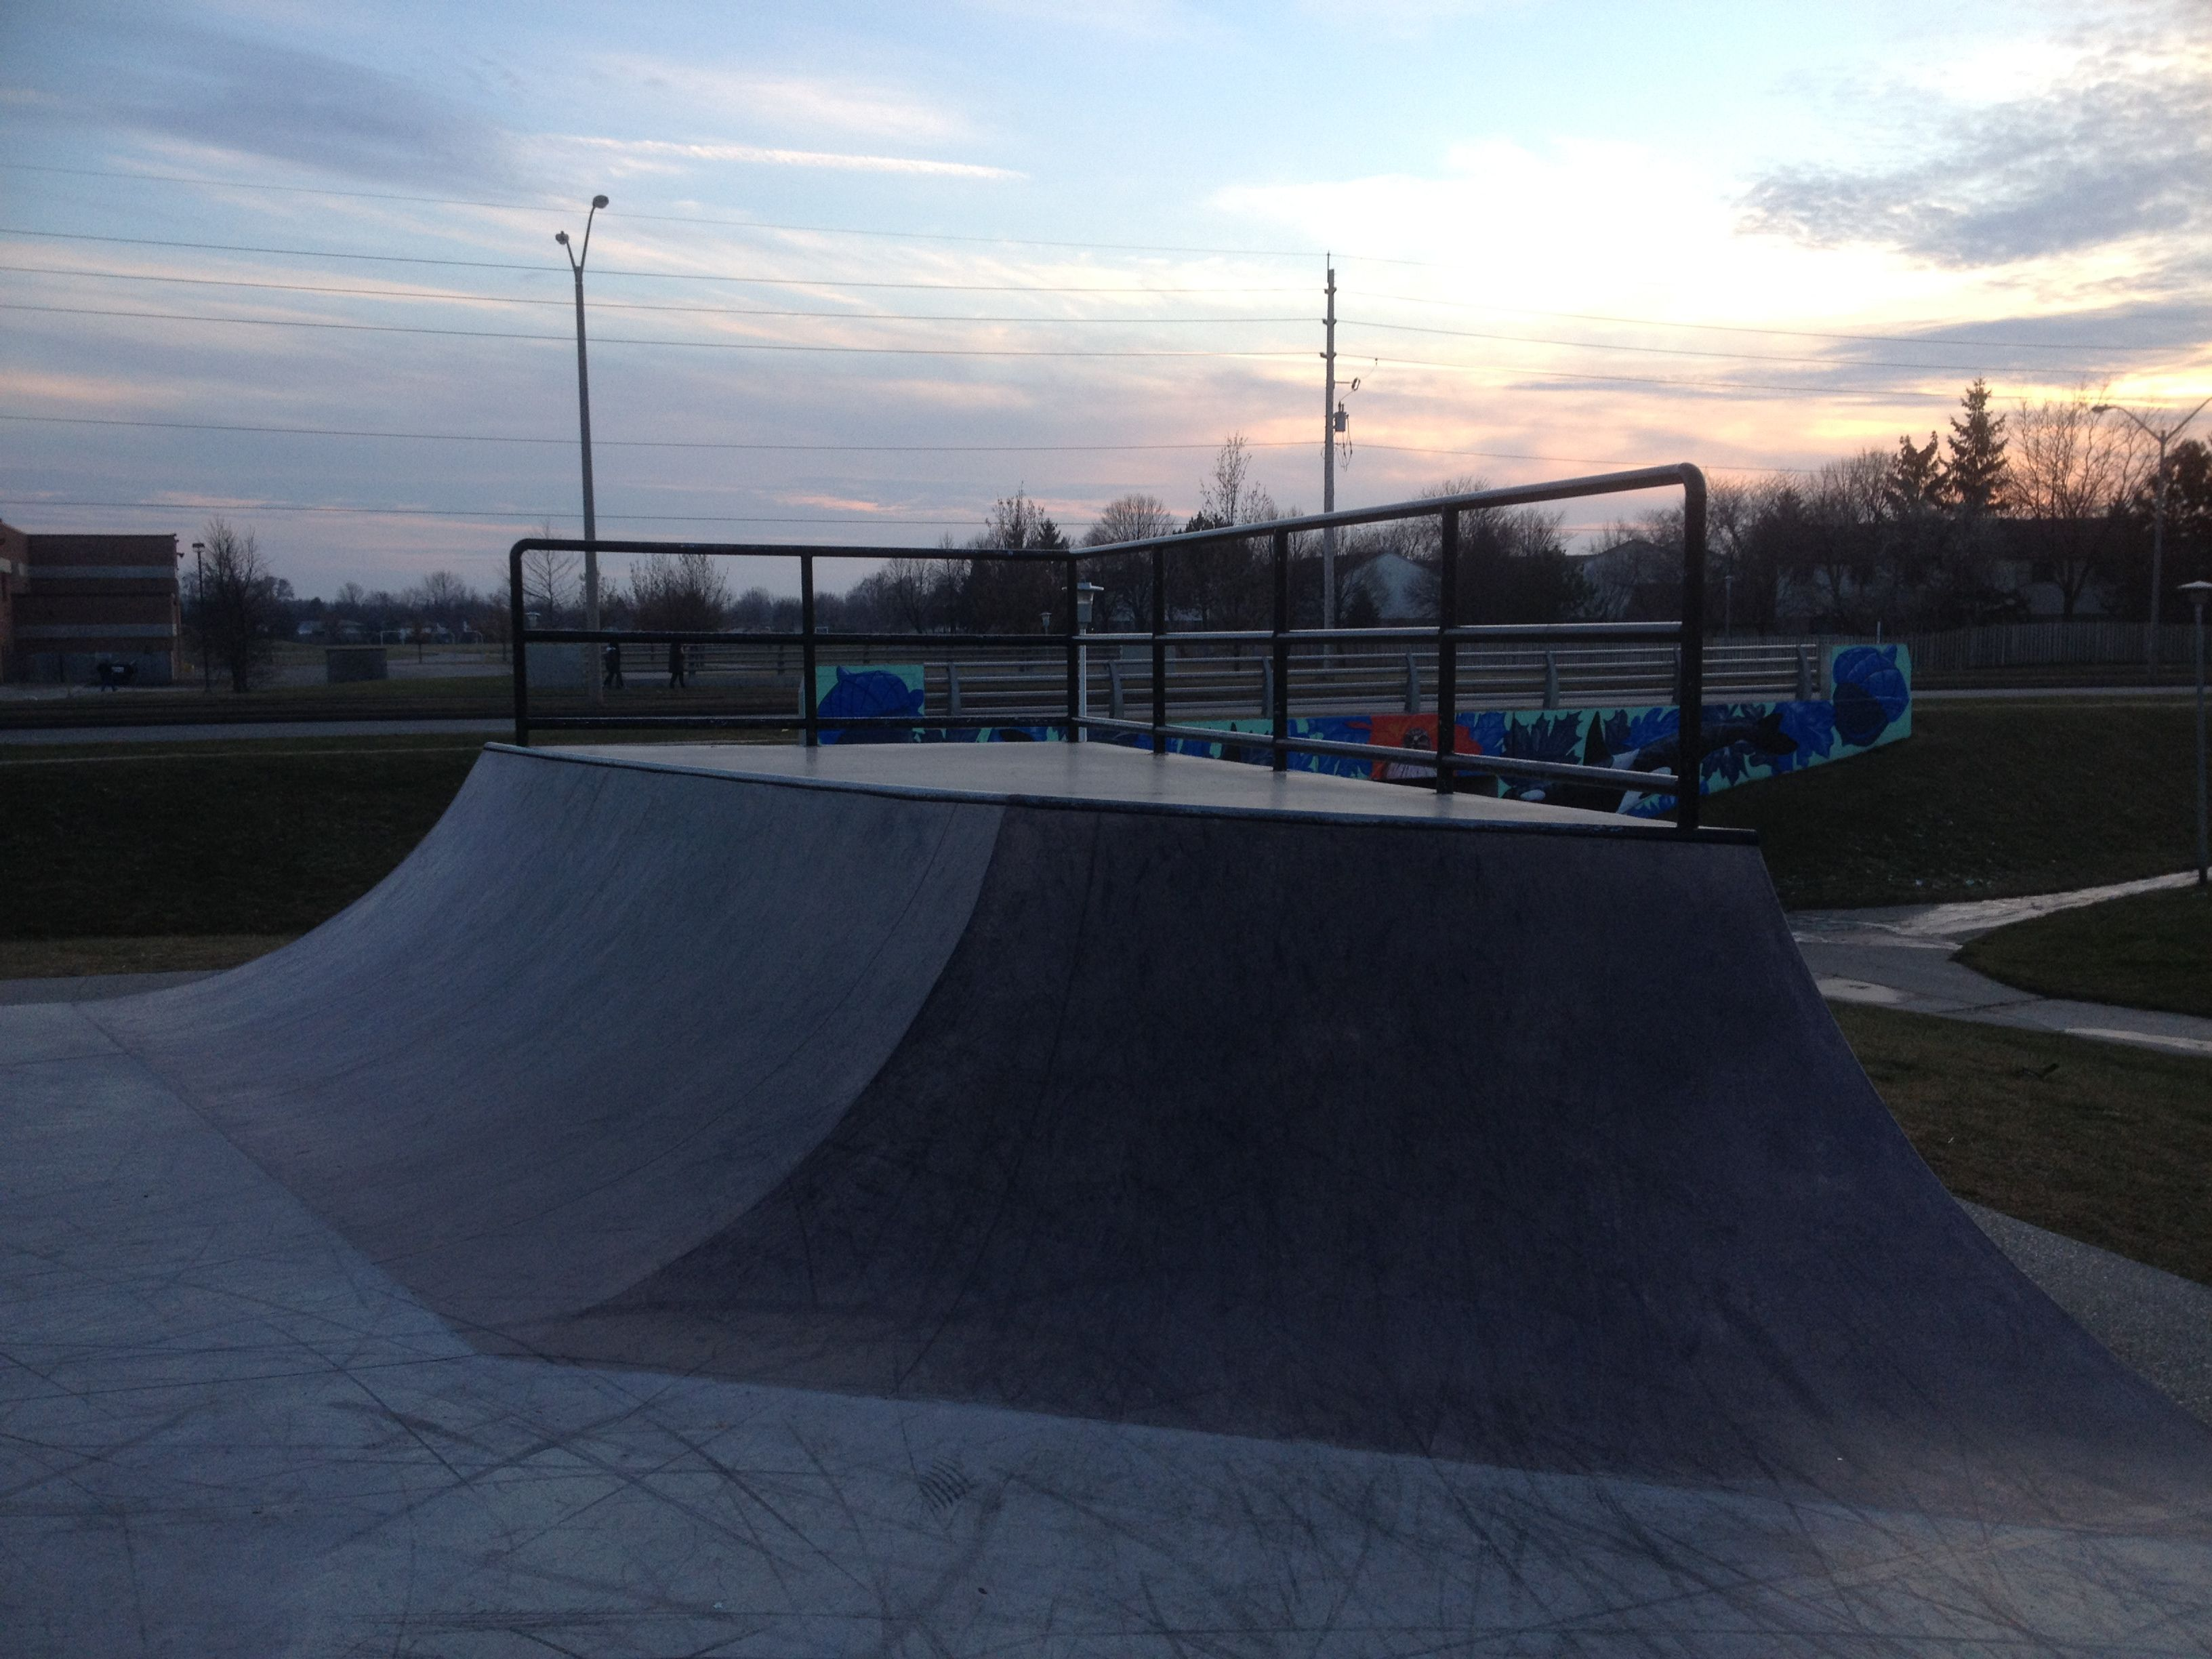 White Oaks Skatepark - A Visual Tour! #LdnOnt